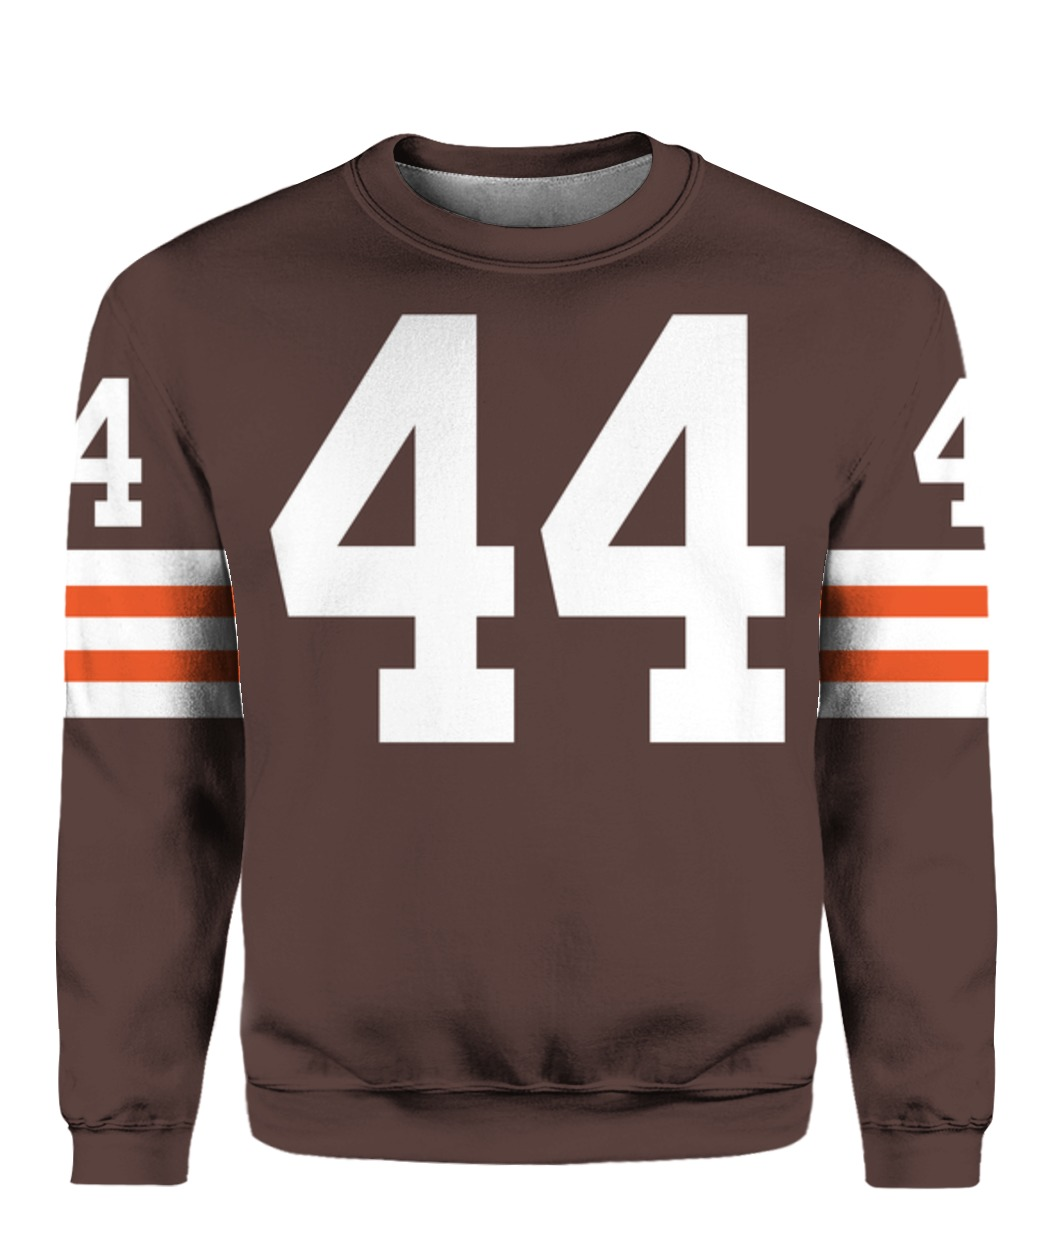 Earnest Byner # 44 - newday.store Shirts | Shop Funny T Shirts ...